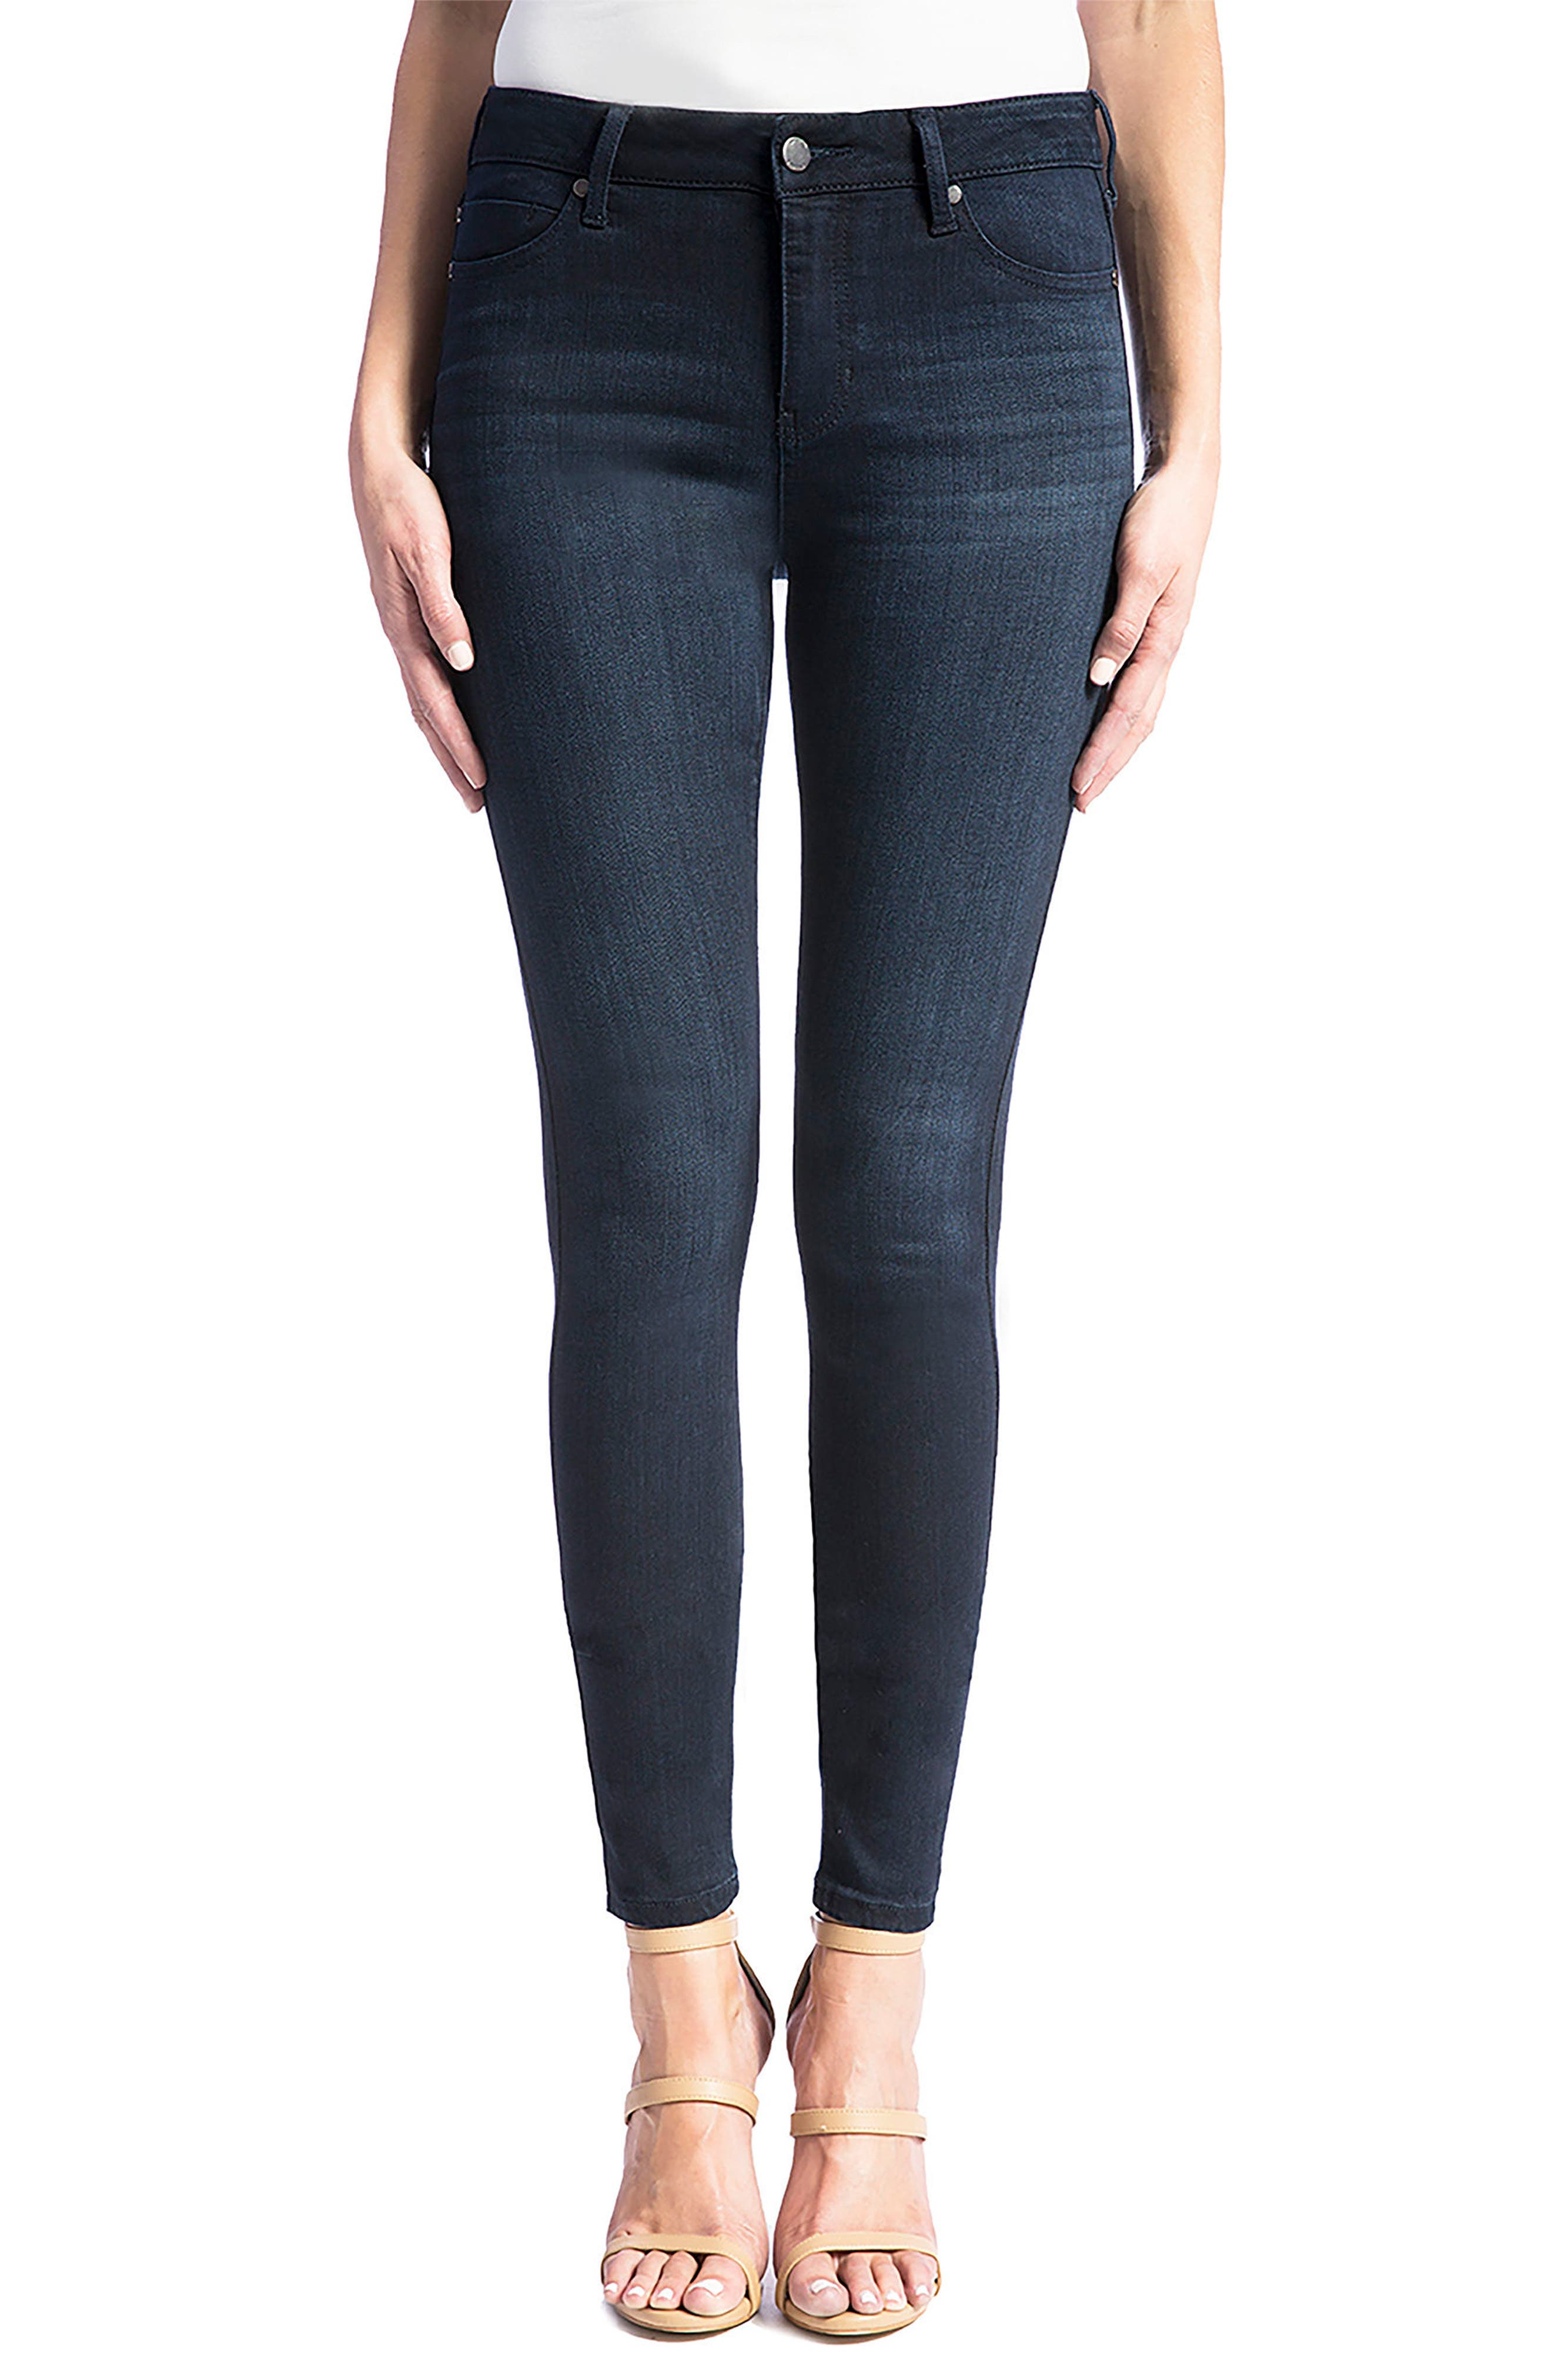 Jeans Co. Abby Stretch Skinny Jeans,                         Main,                         color, Stone Wash